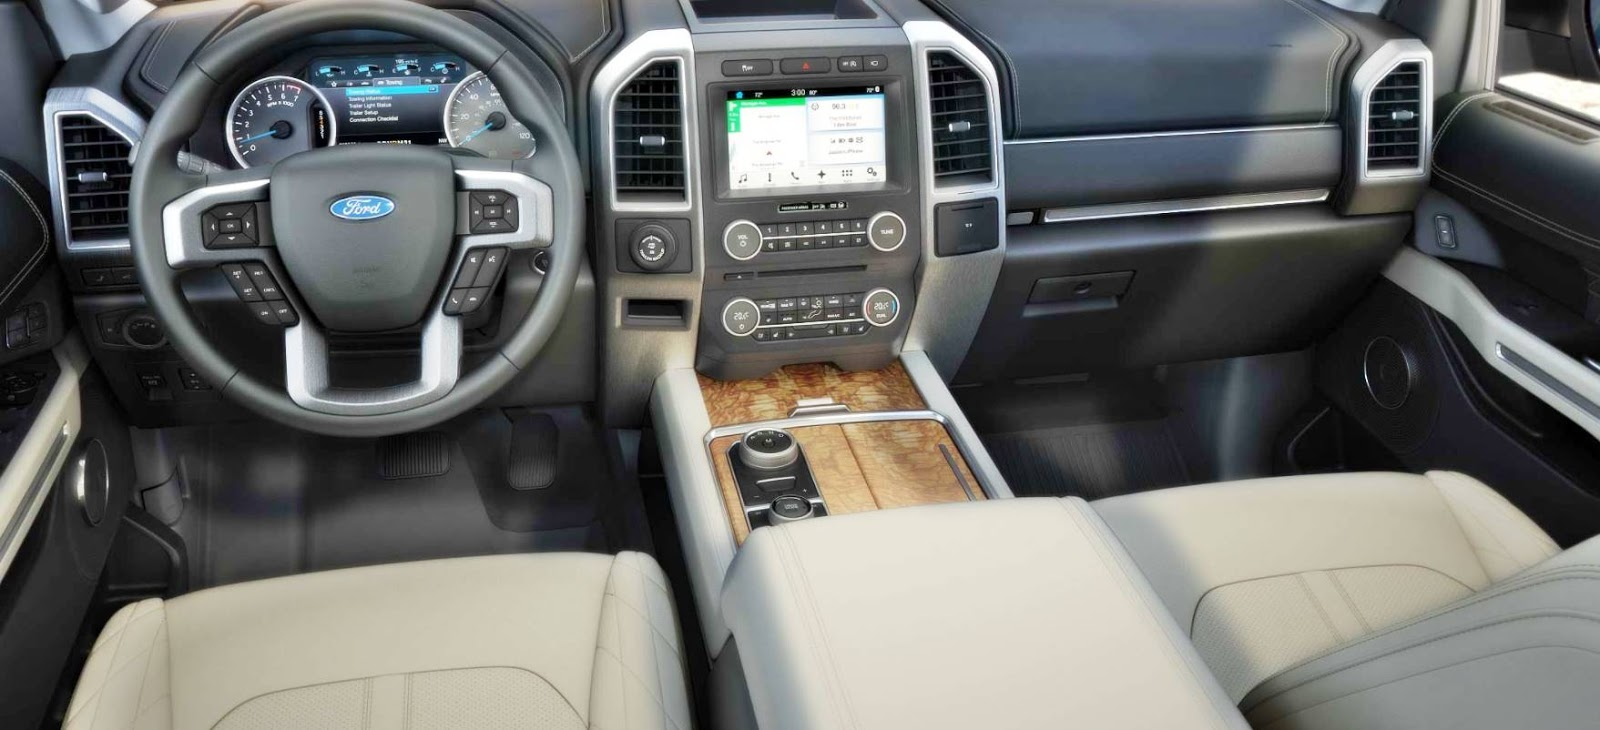 2018 Expedition King Ranch Interior